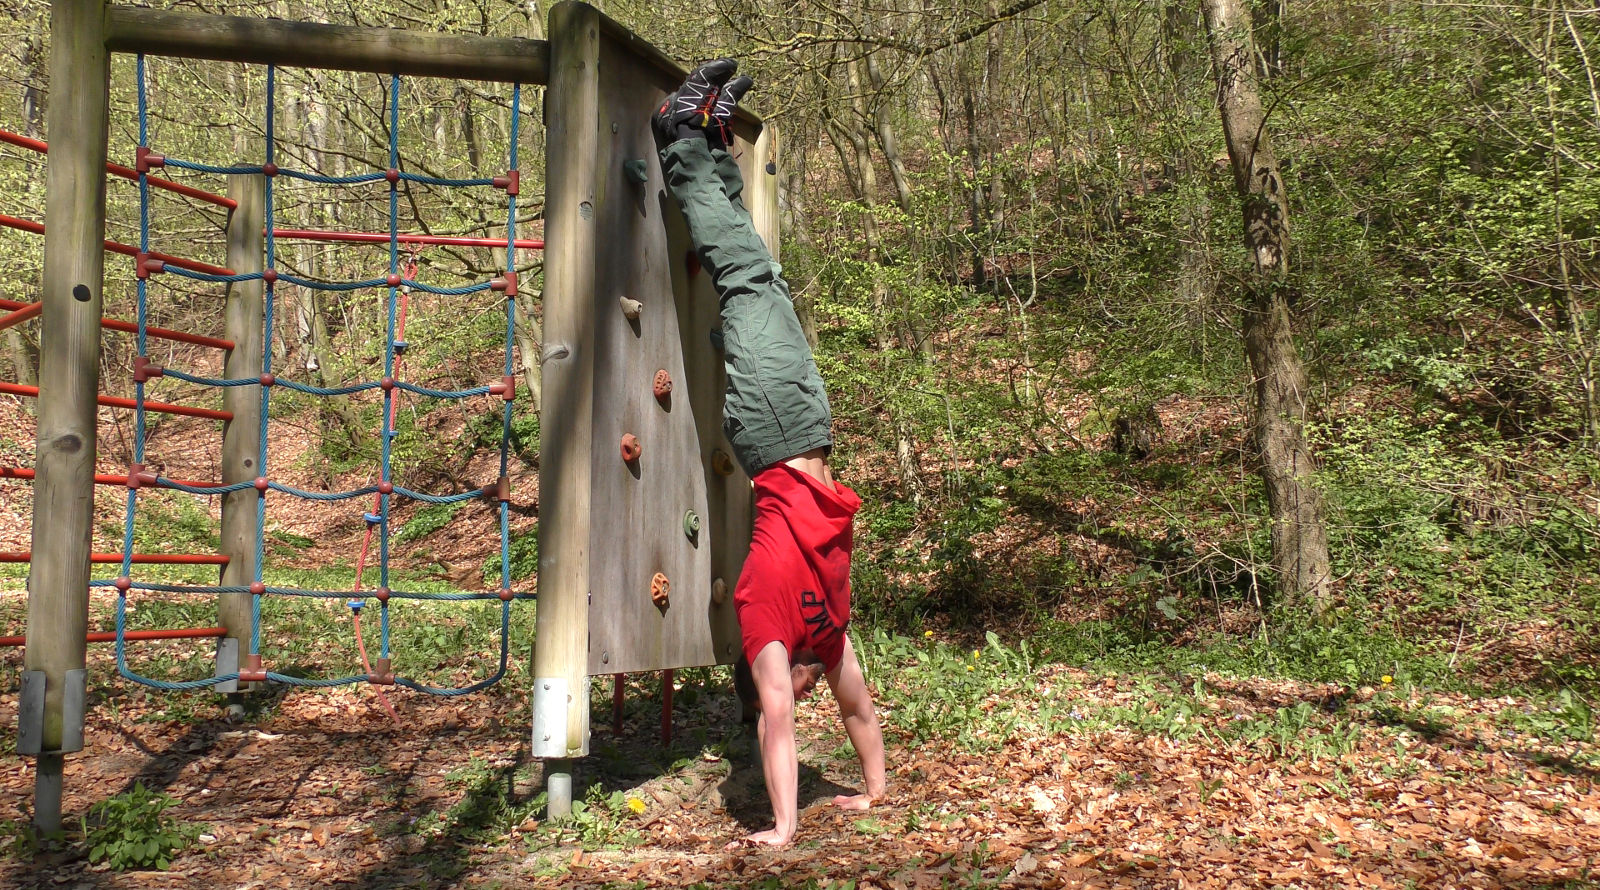 Boden handstand for Boden 10 goldegg